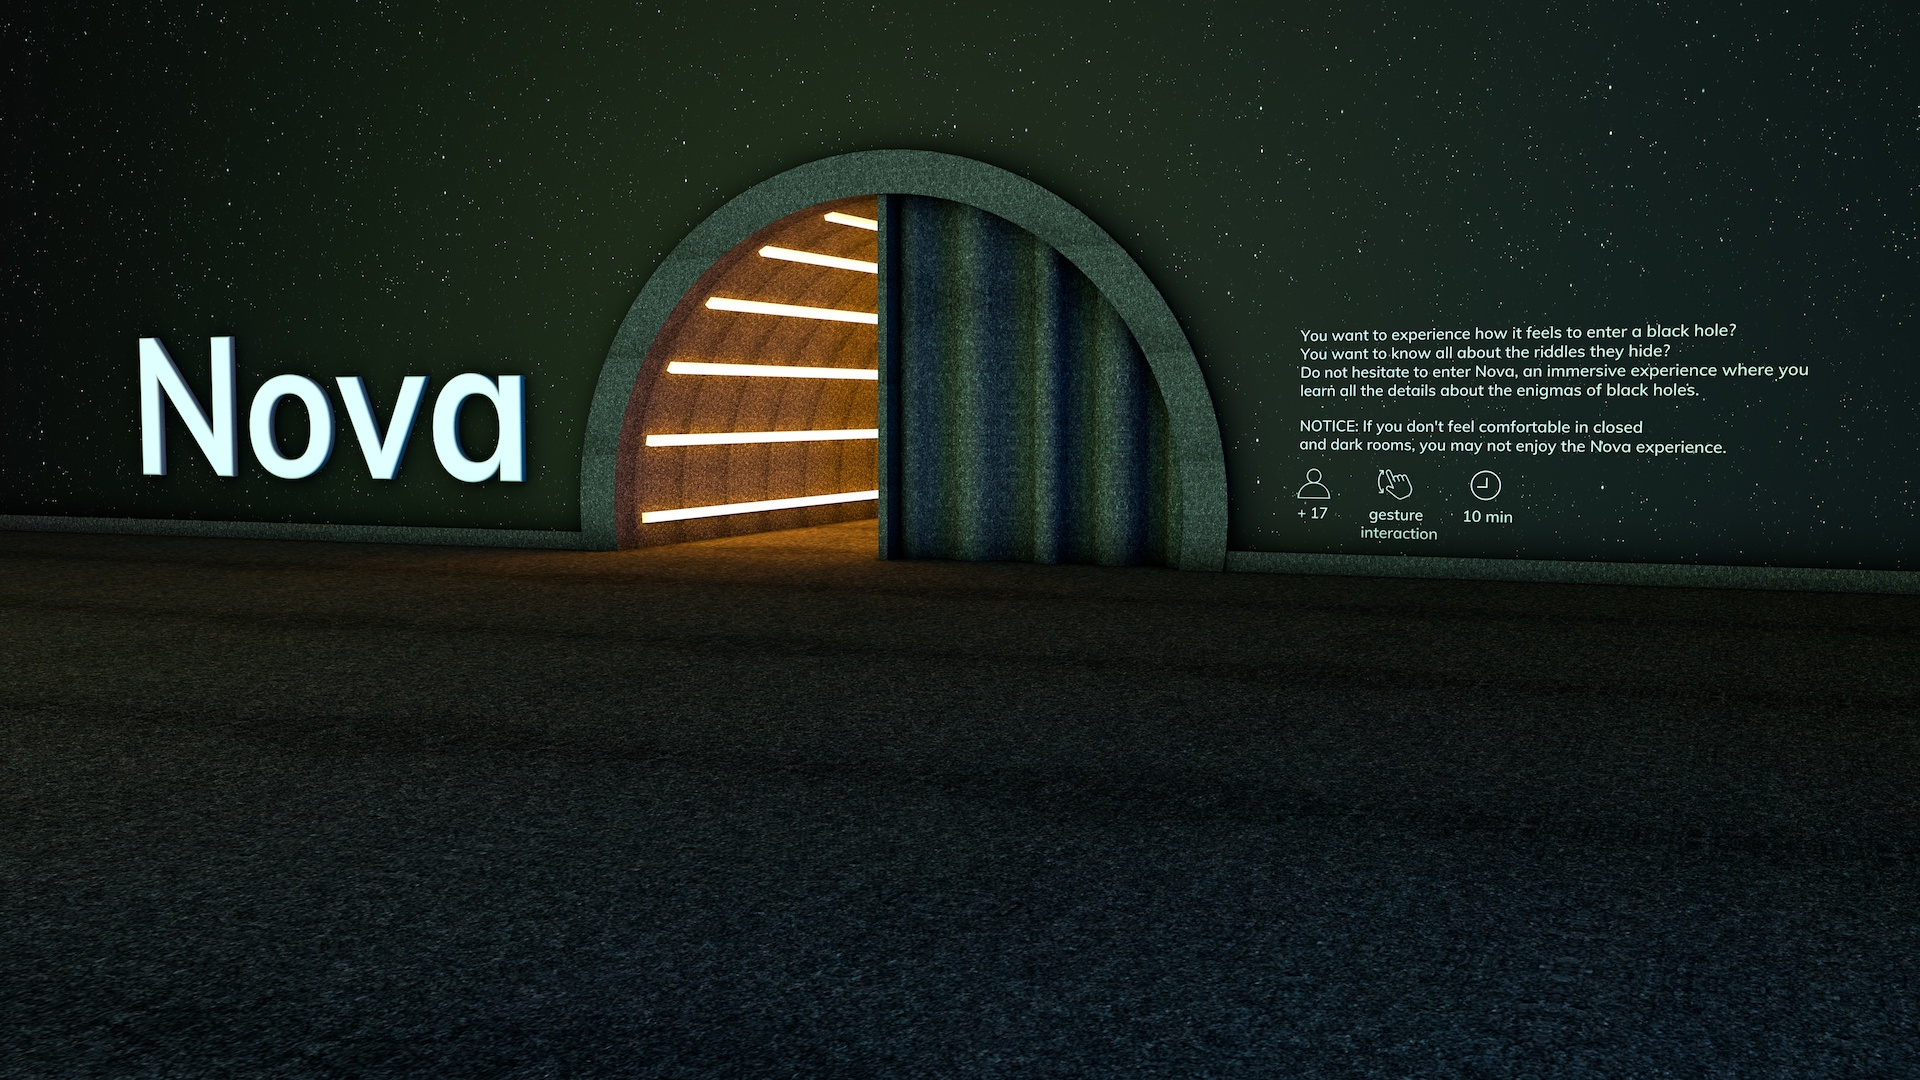 rendering of an entrance for an immersive exhibition with big typo on the wall